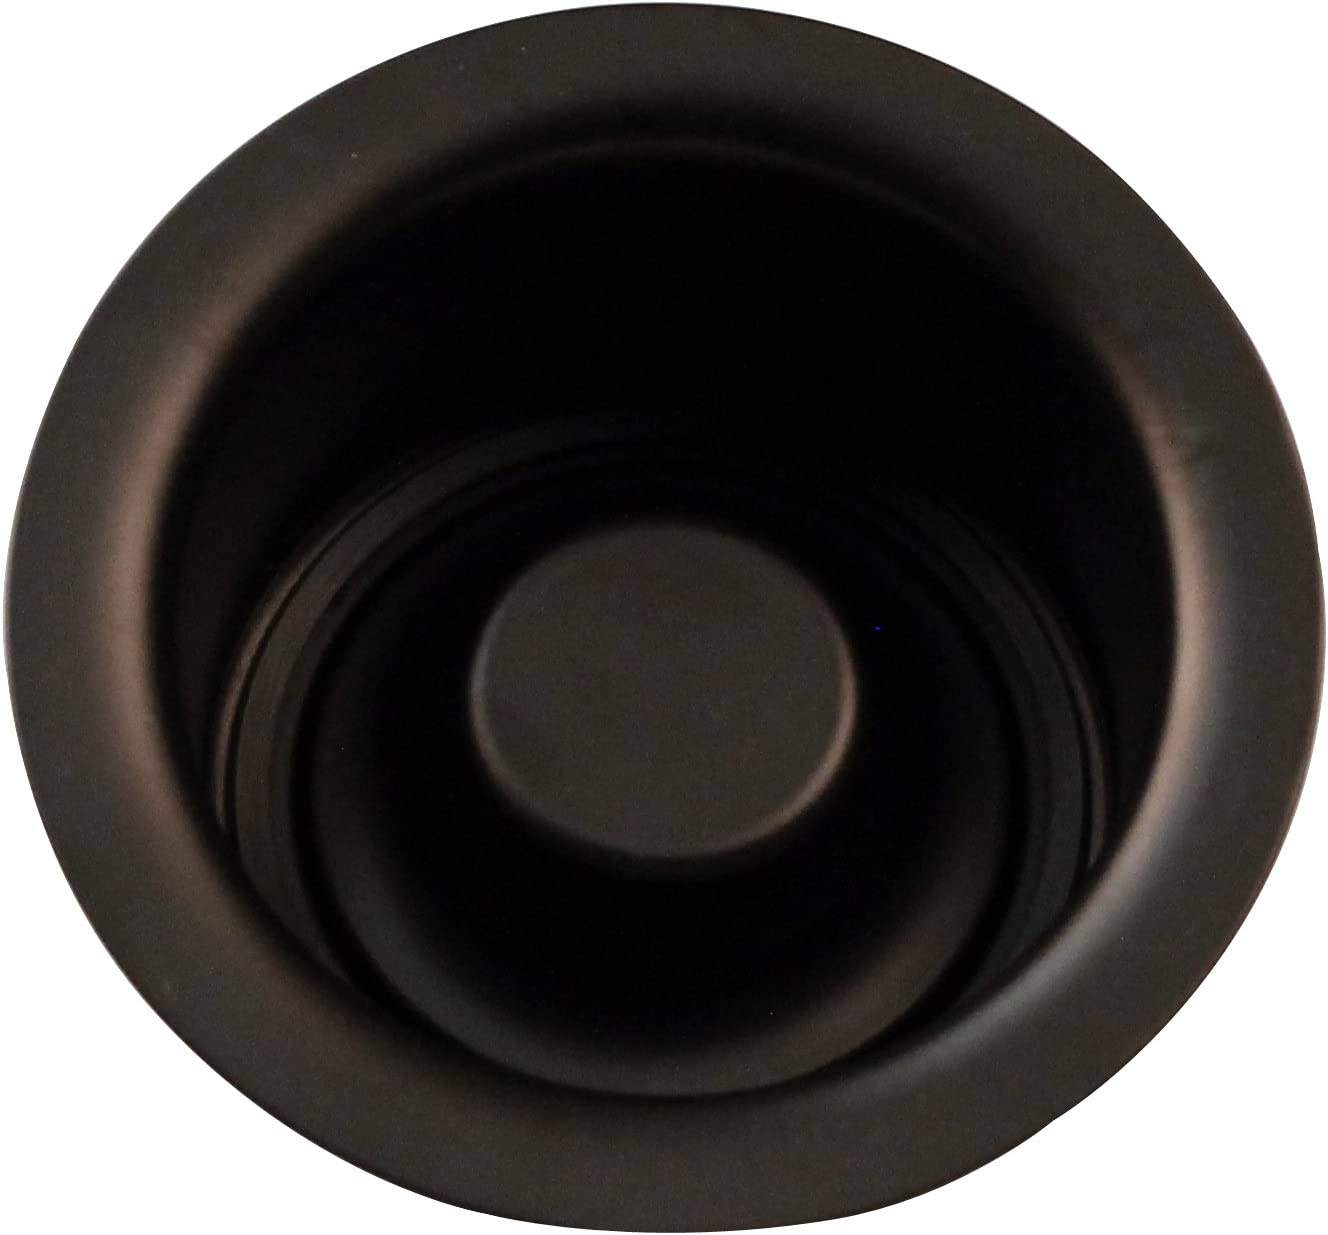 Westbrass R2082-12 Extra-Deep Disposal Flange and Stopper, Oil Rubbed Bronze